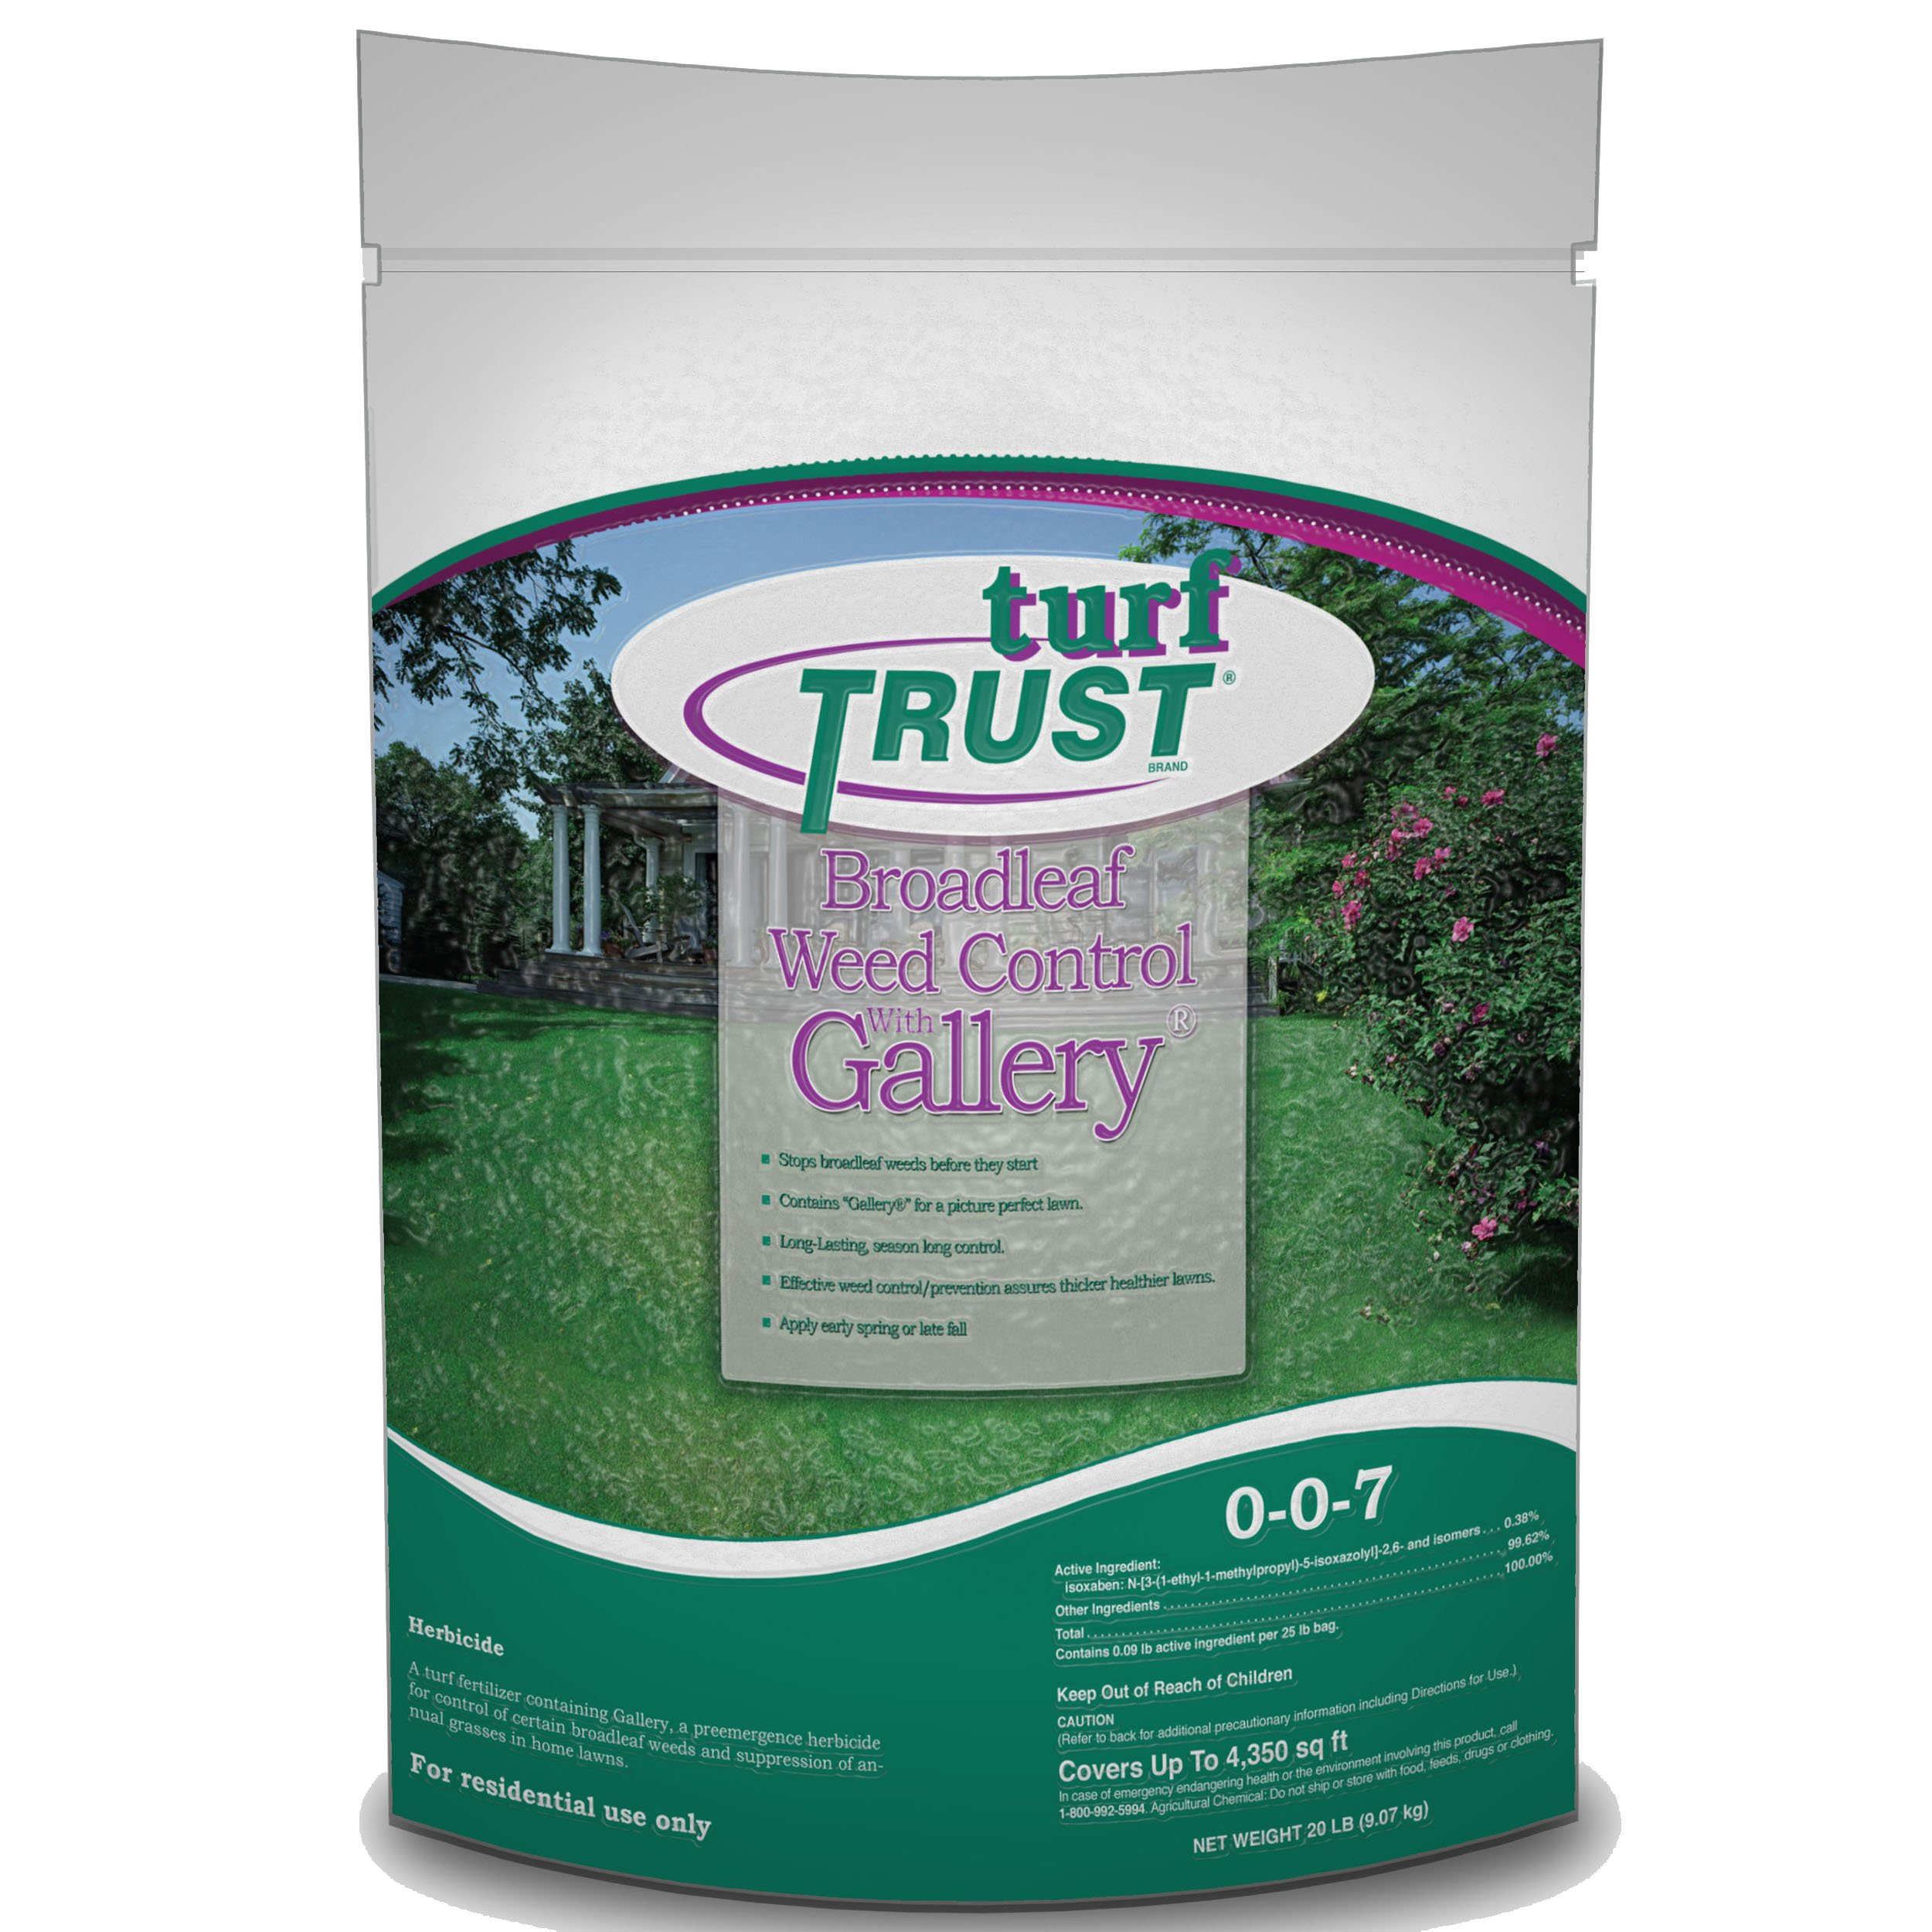 Pro Trust Products 71302 4.4M 20-Number Broadleaf Weed Ctrl with Gallery